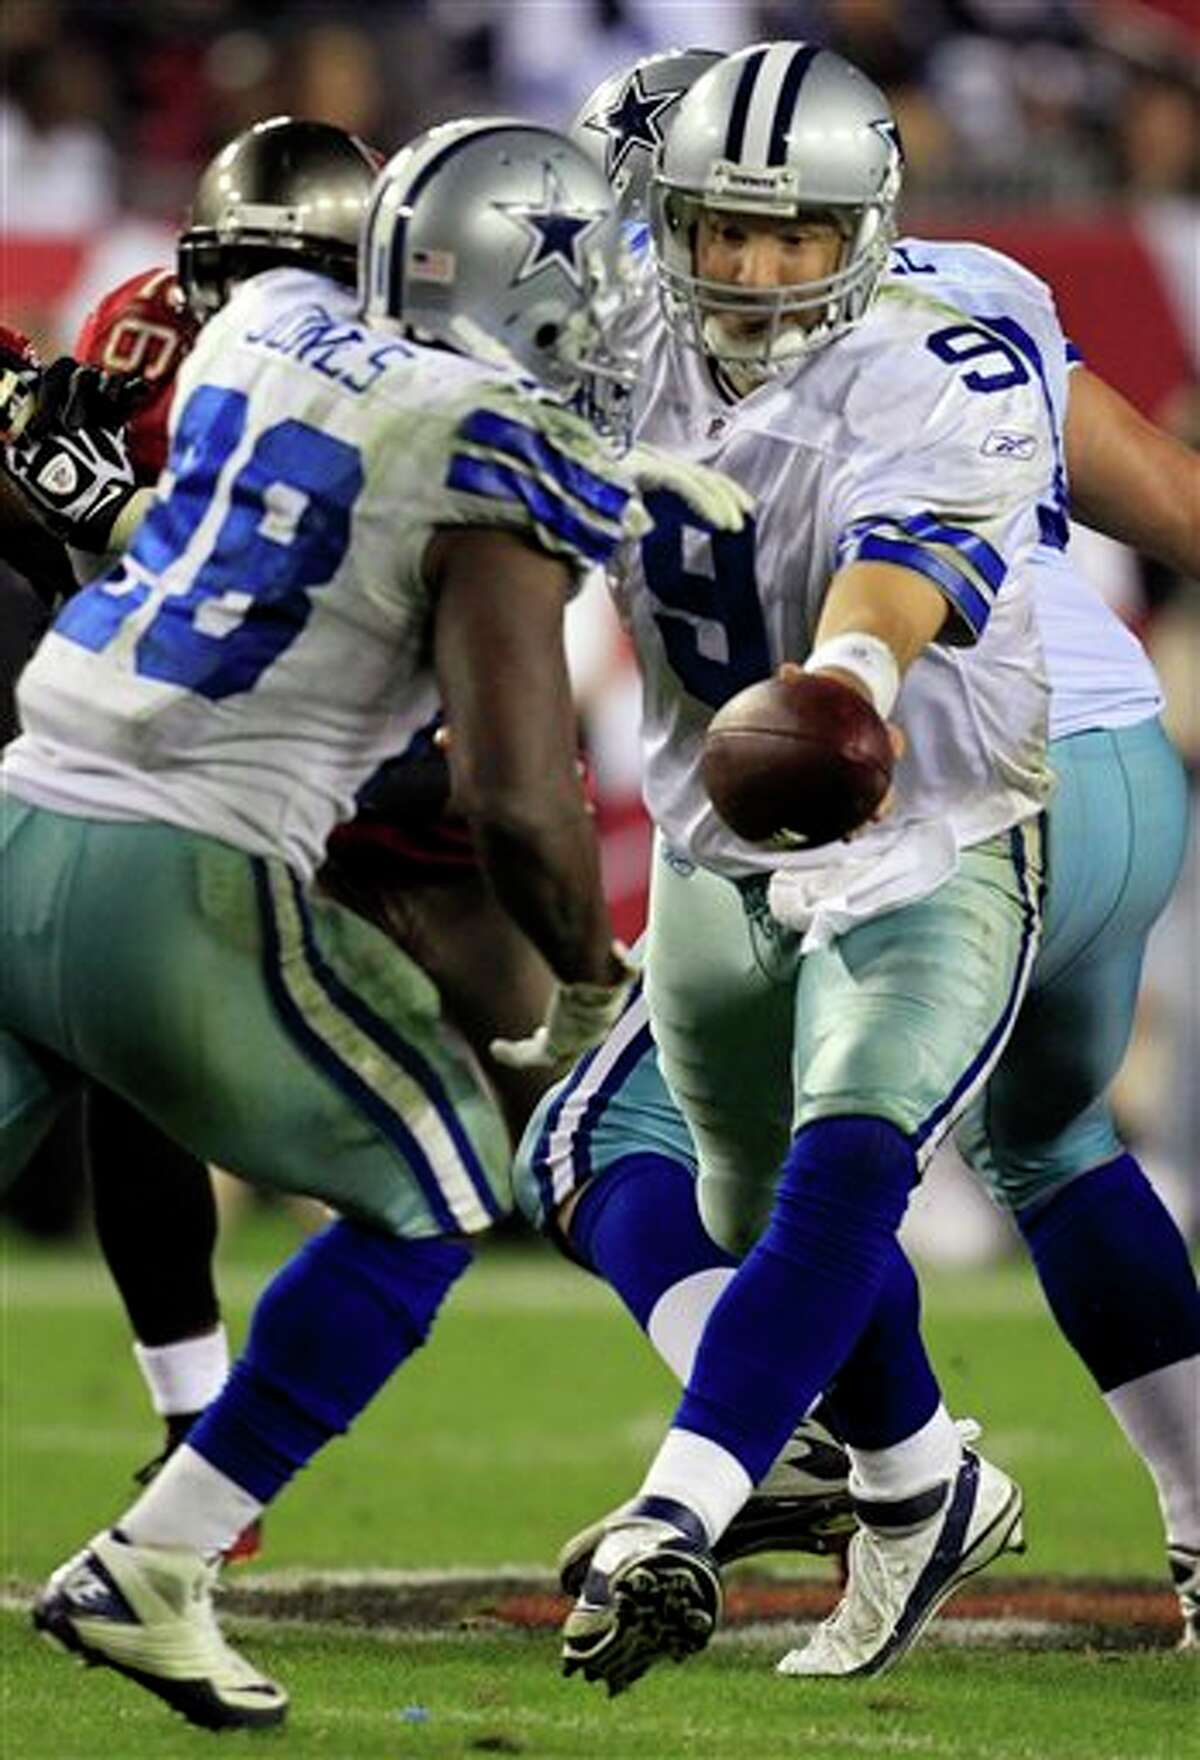 Dallas Cowboys quarterback Tony Romo (9) hands off to running back Felix Jones (28) during the second half of an NFL football game against the Tampa Bay Buccaneers Saturday, Dec. 17, 2011, in Tampa, Fla. (AP Photo/Chris O'Meara)